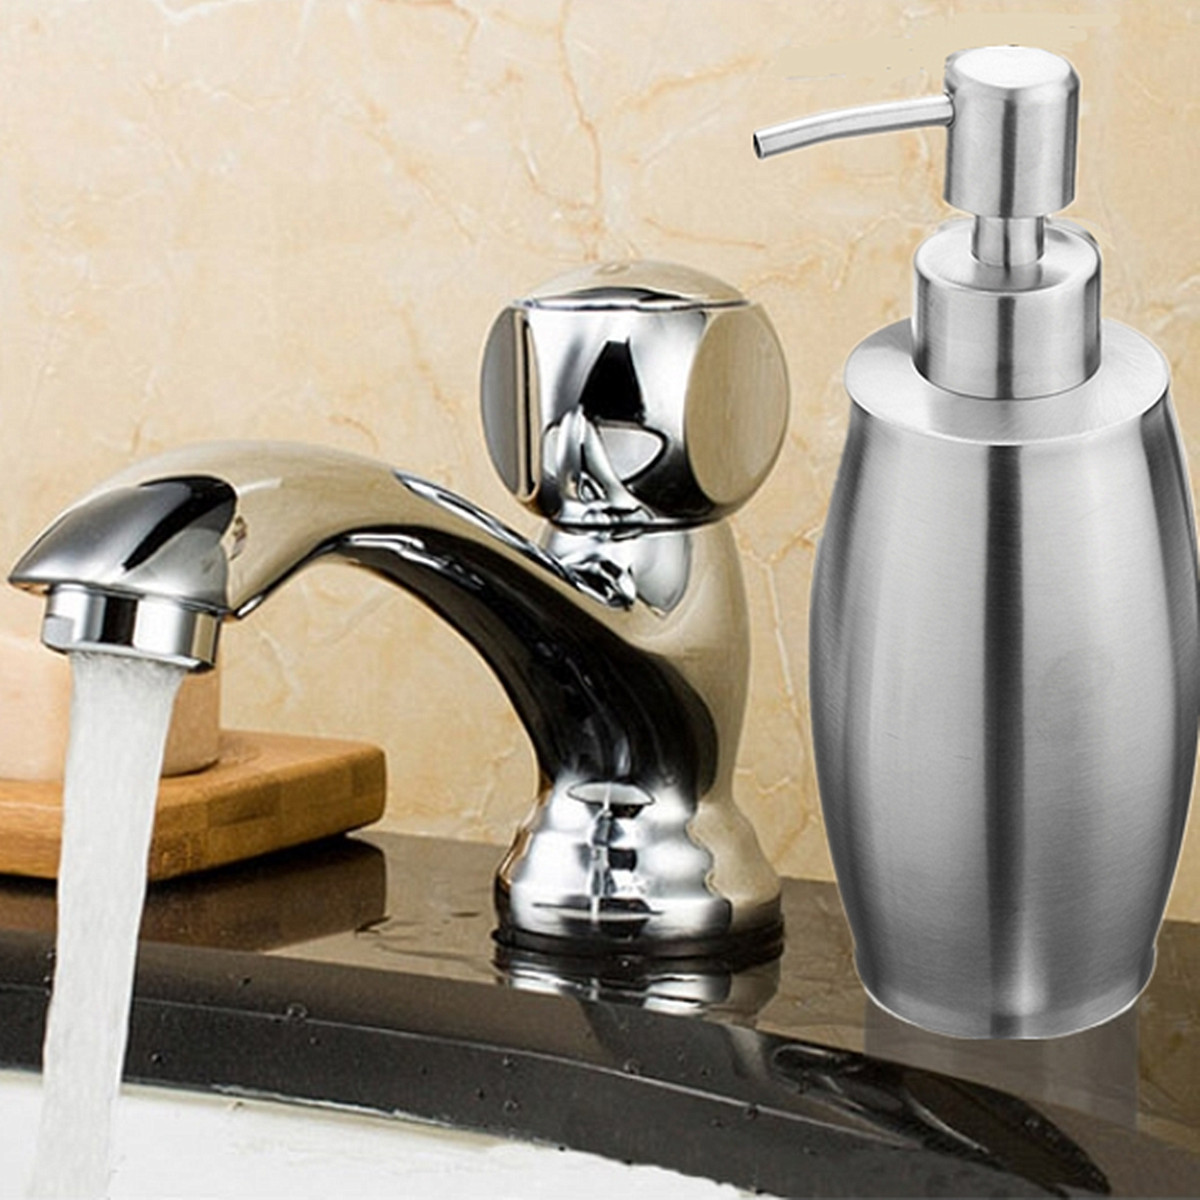 SH158 Uniform Push Stainless Steel Sanding Liquid Soap/Latex/Hand Dispenser 375ML